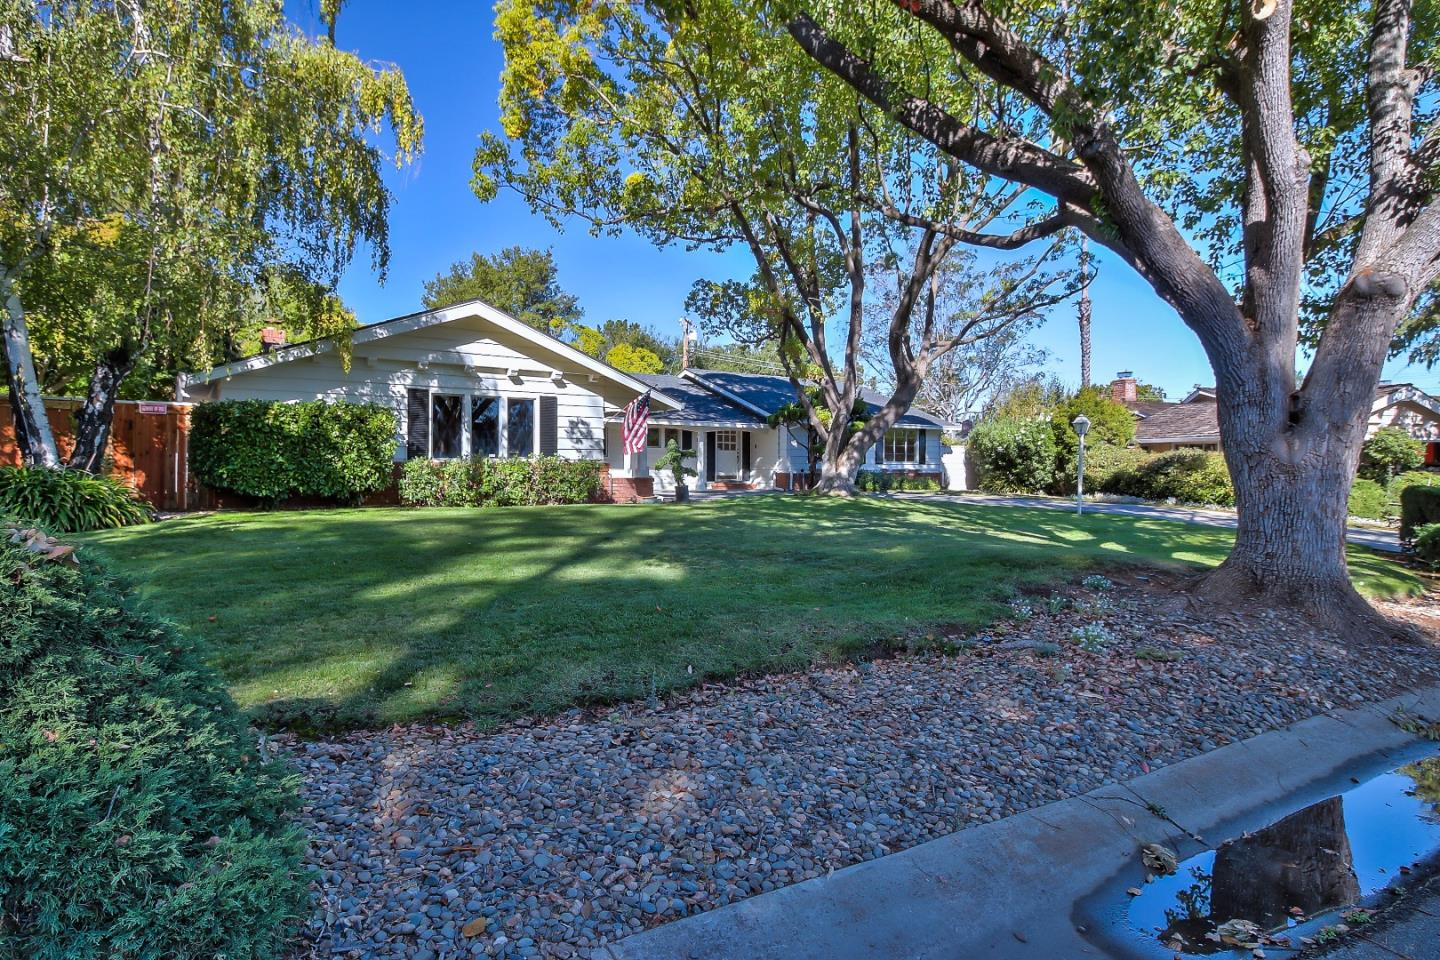 Single Family Home for Sale at 815 Orchid Place 815 Orchid Place Los Altos, California 94024 United States